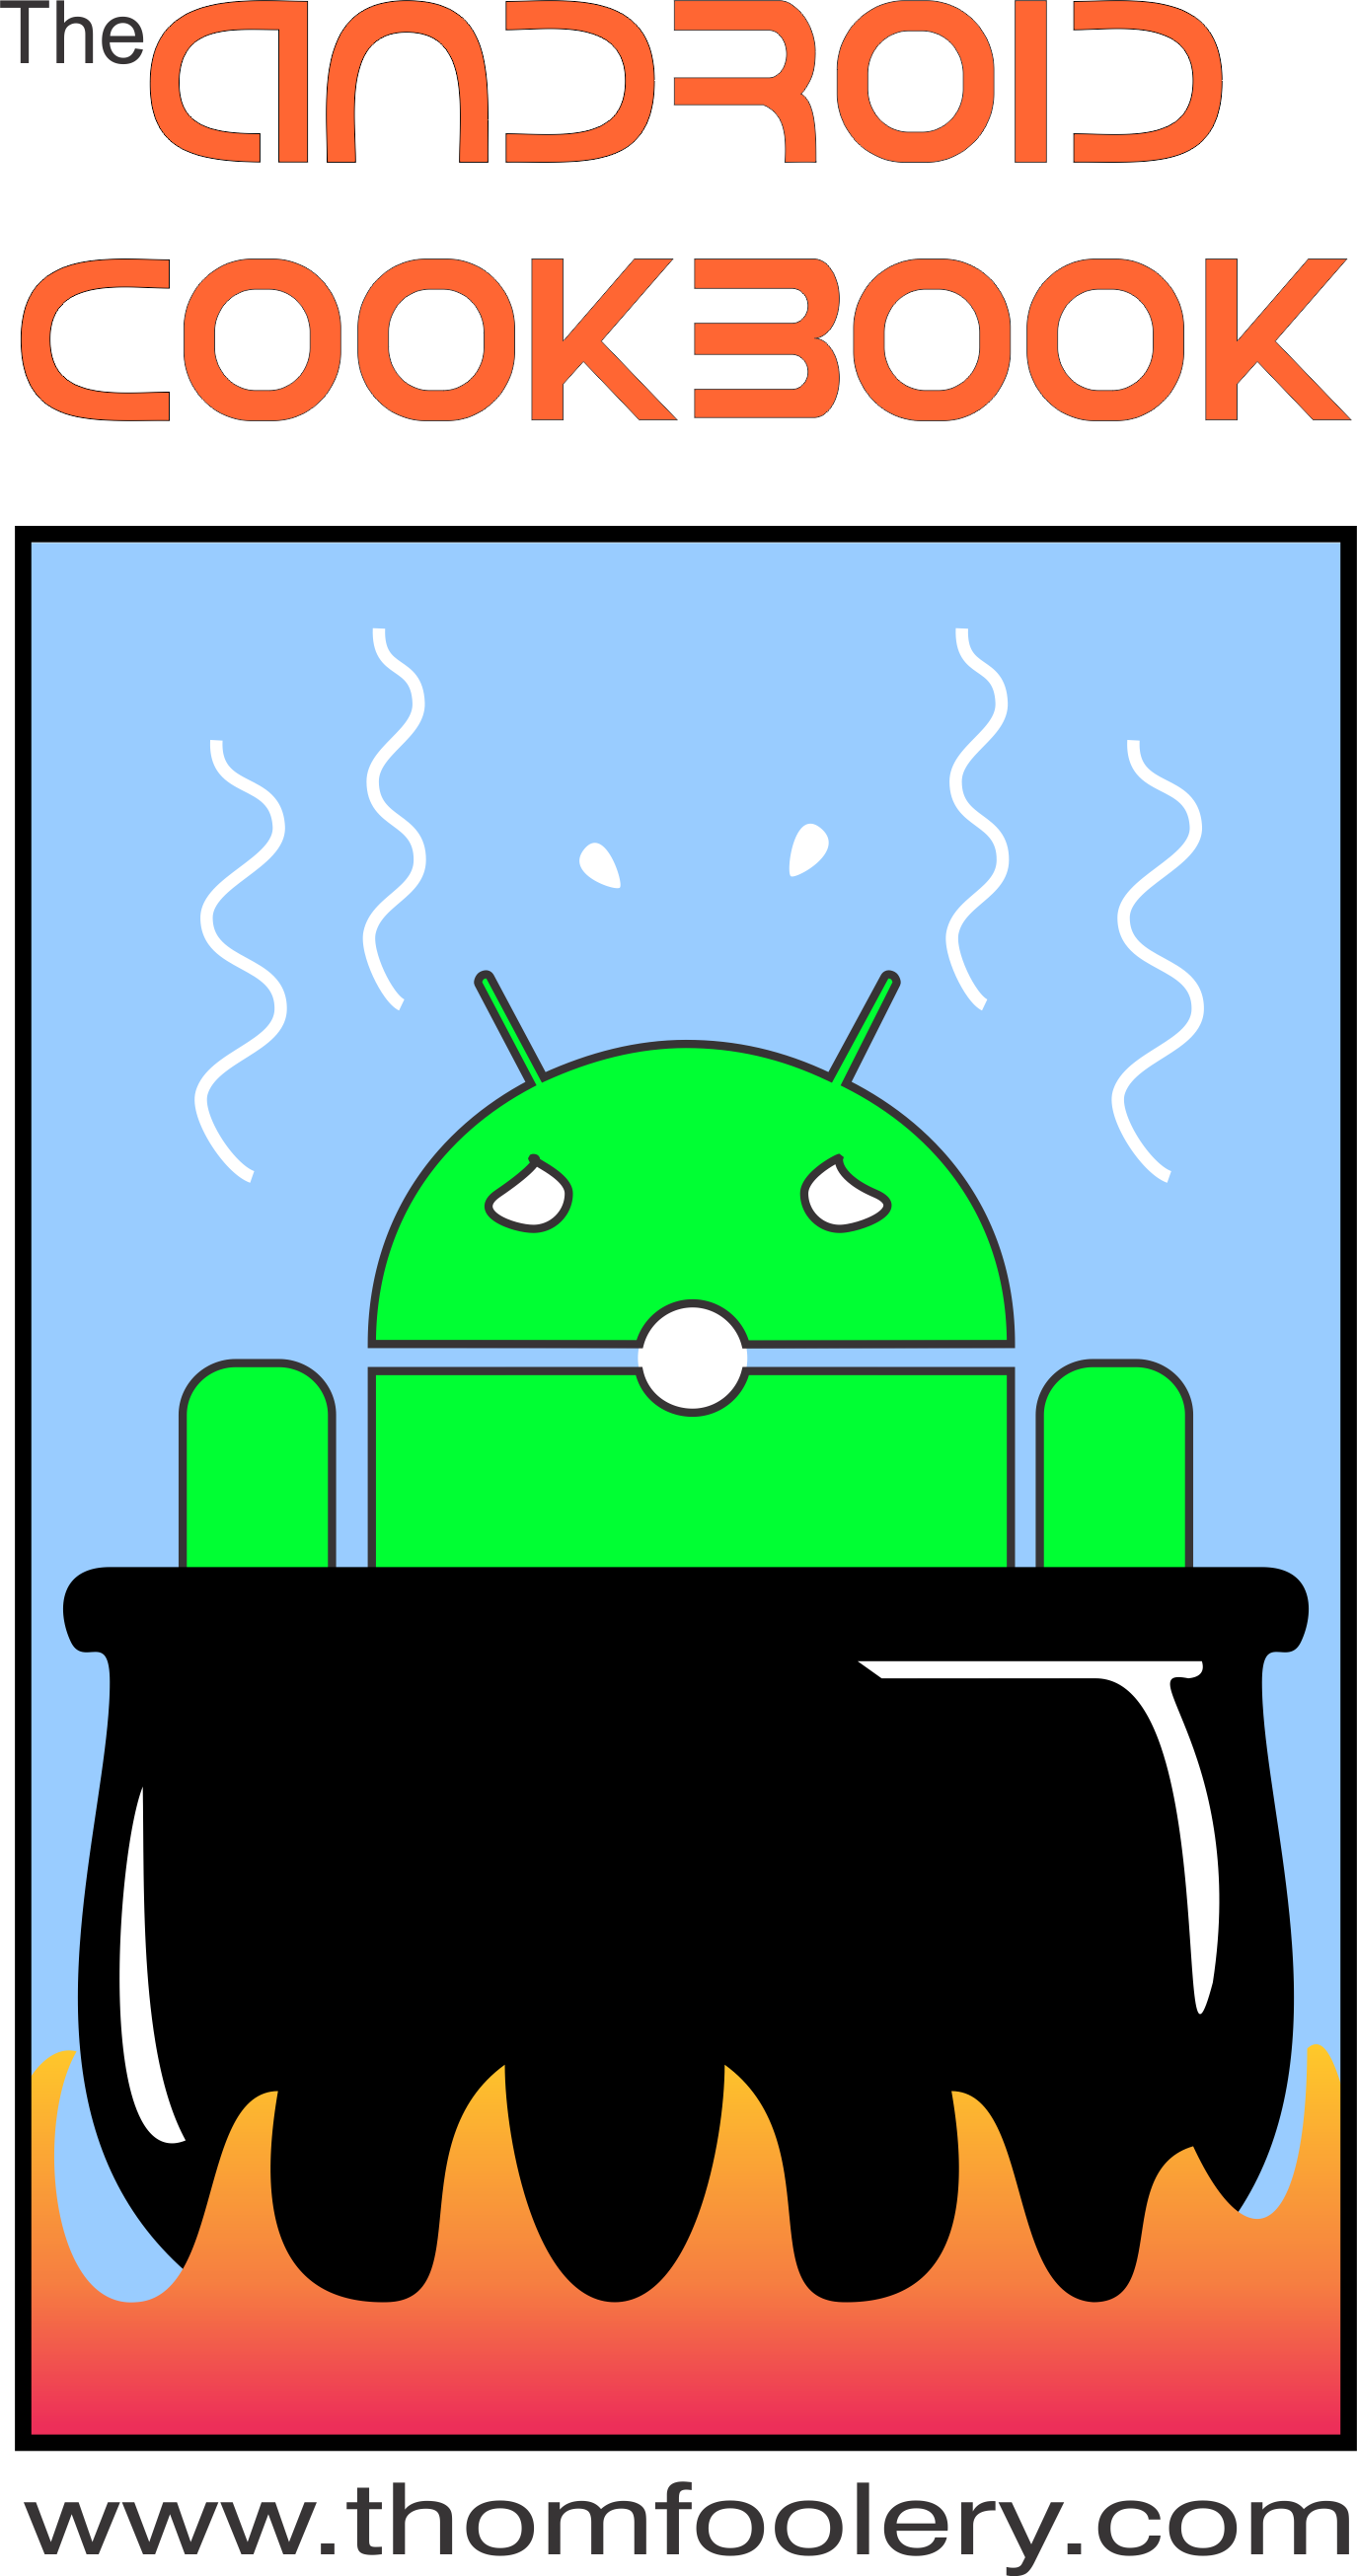 Android cooking in Cannibal Pot